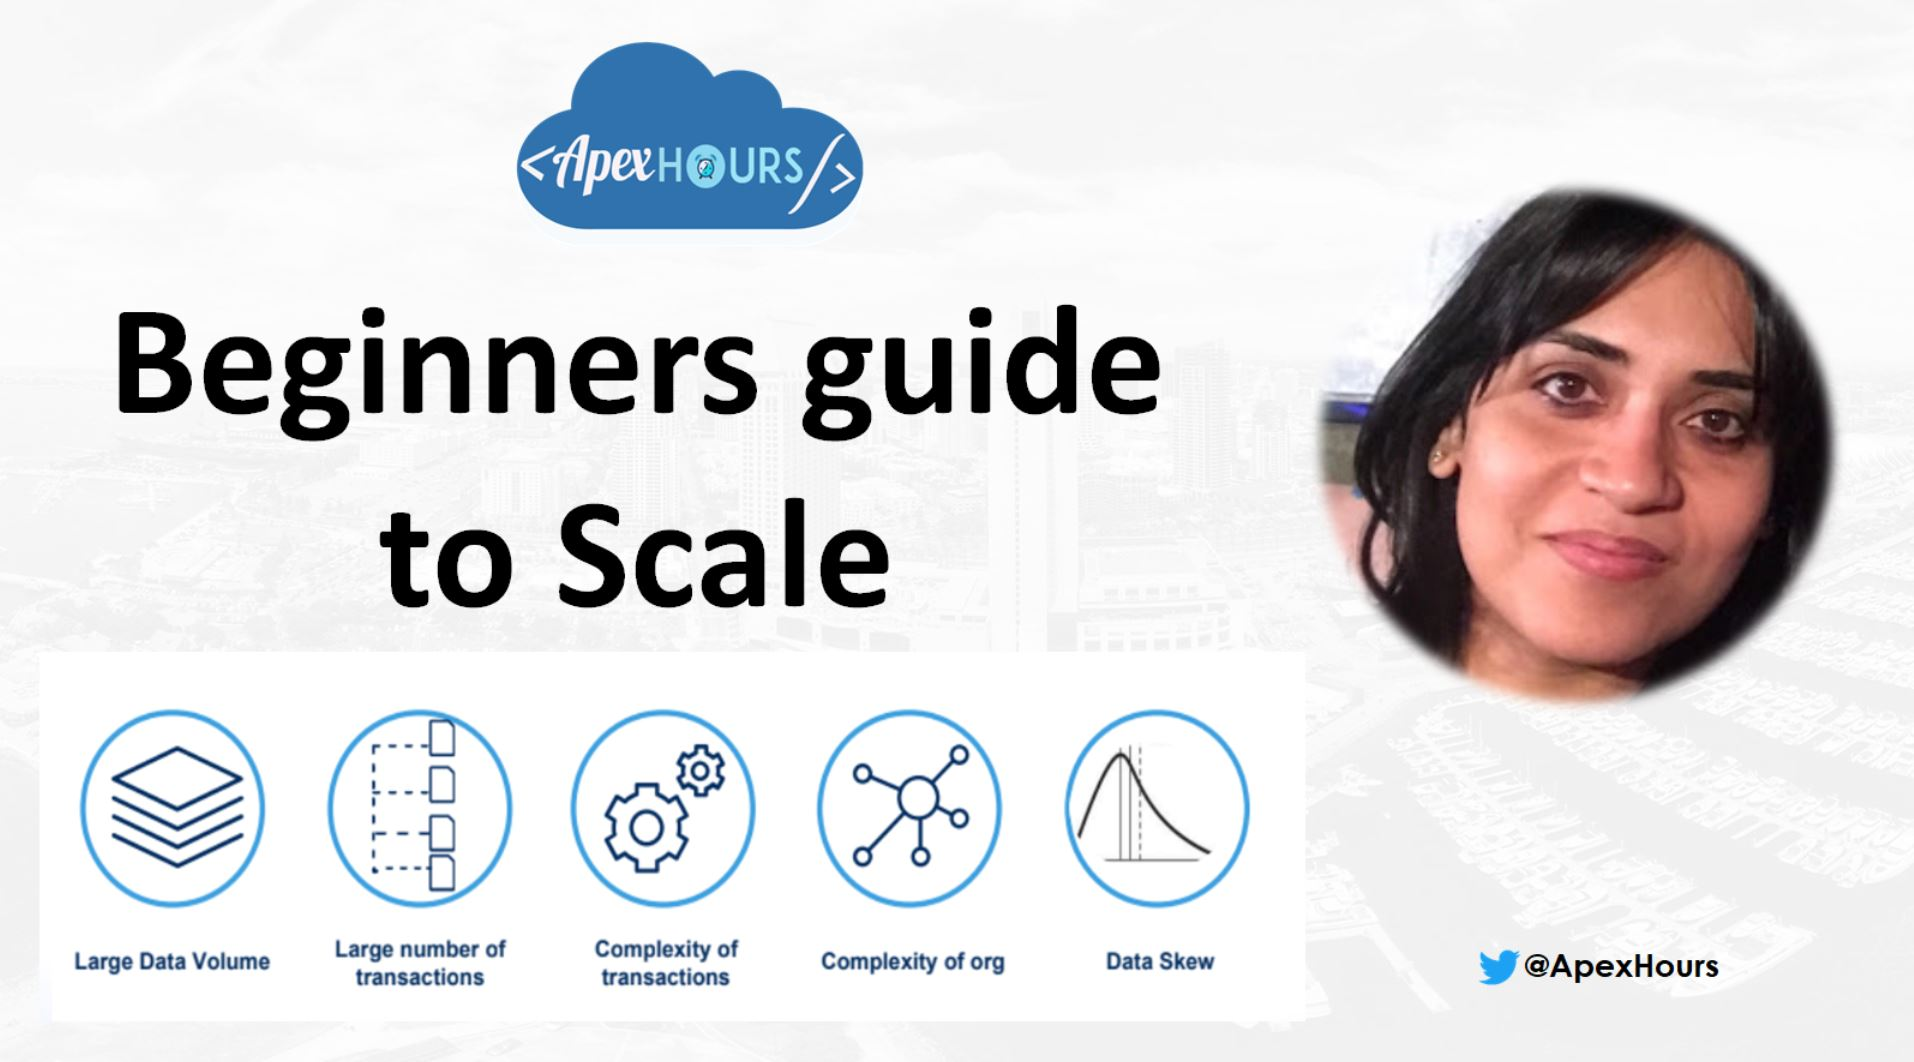 Beginners guide to Scale